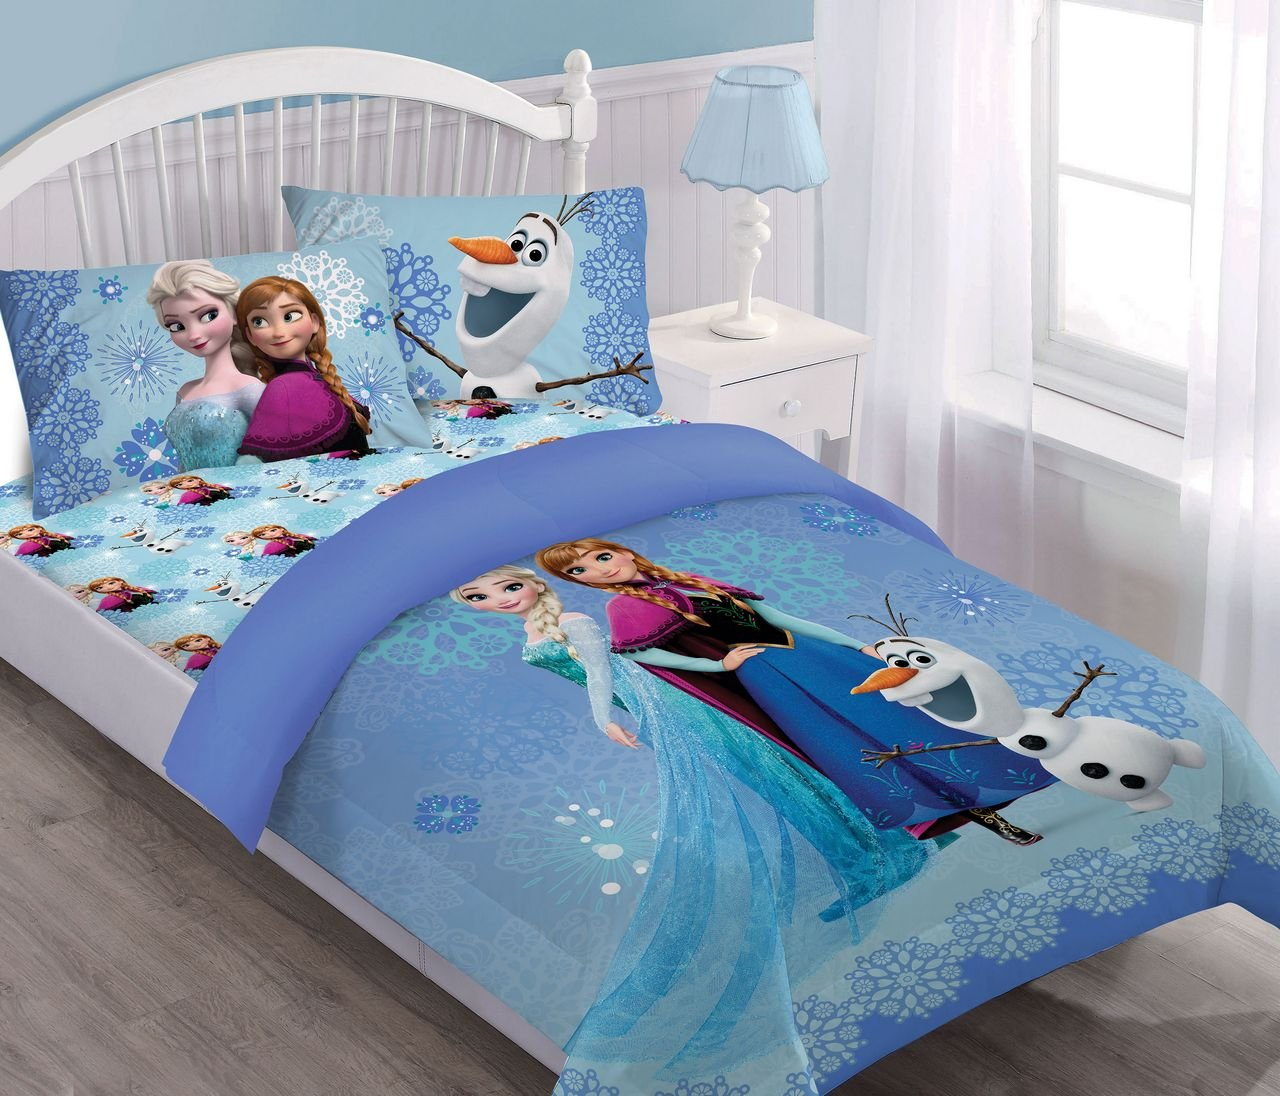 Disney Frozen Springtime Frost Full Comforter Set with Fitted Sheet